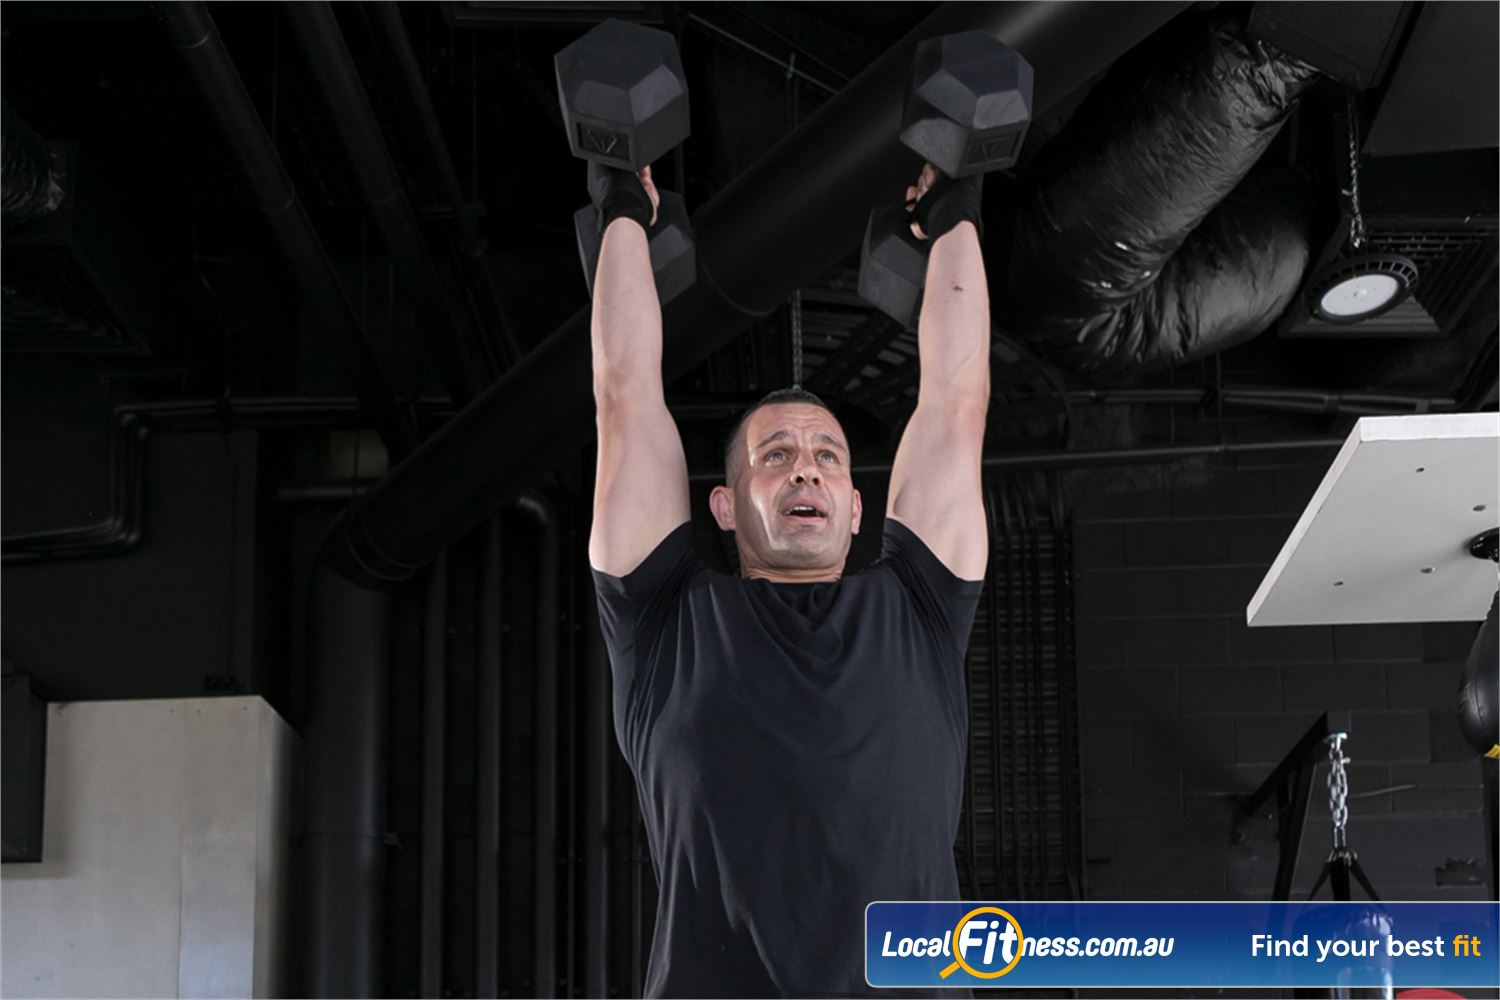 12 Round Fitness Near Canterbury Our workouts are designed around functional strength and cardio workouts.